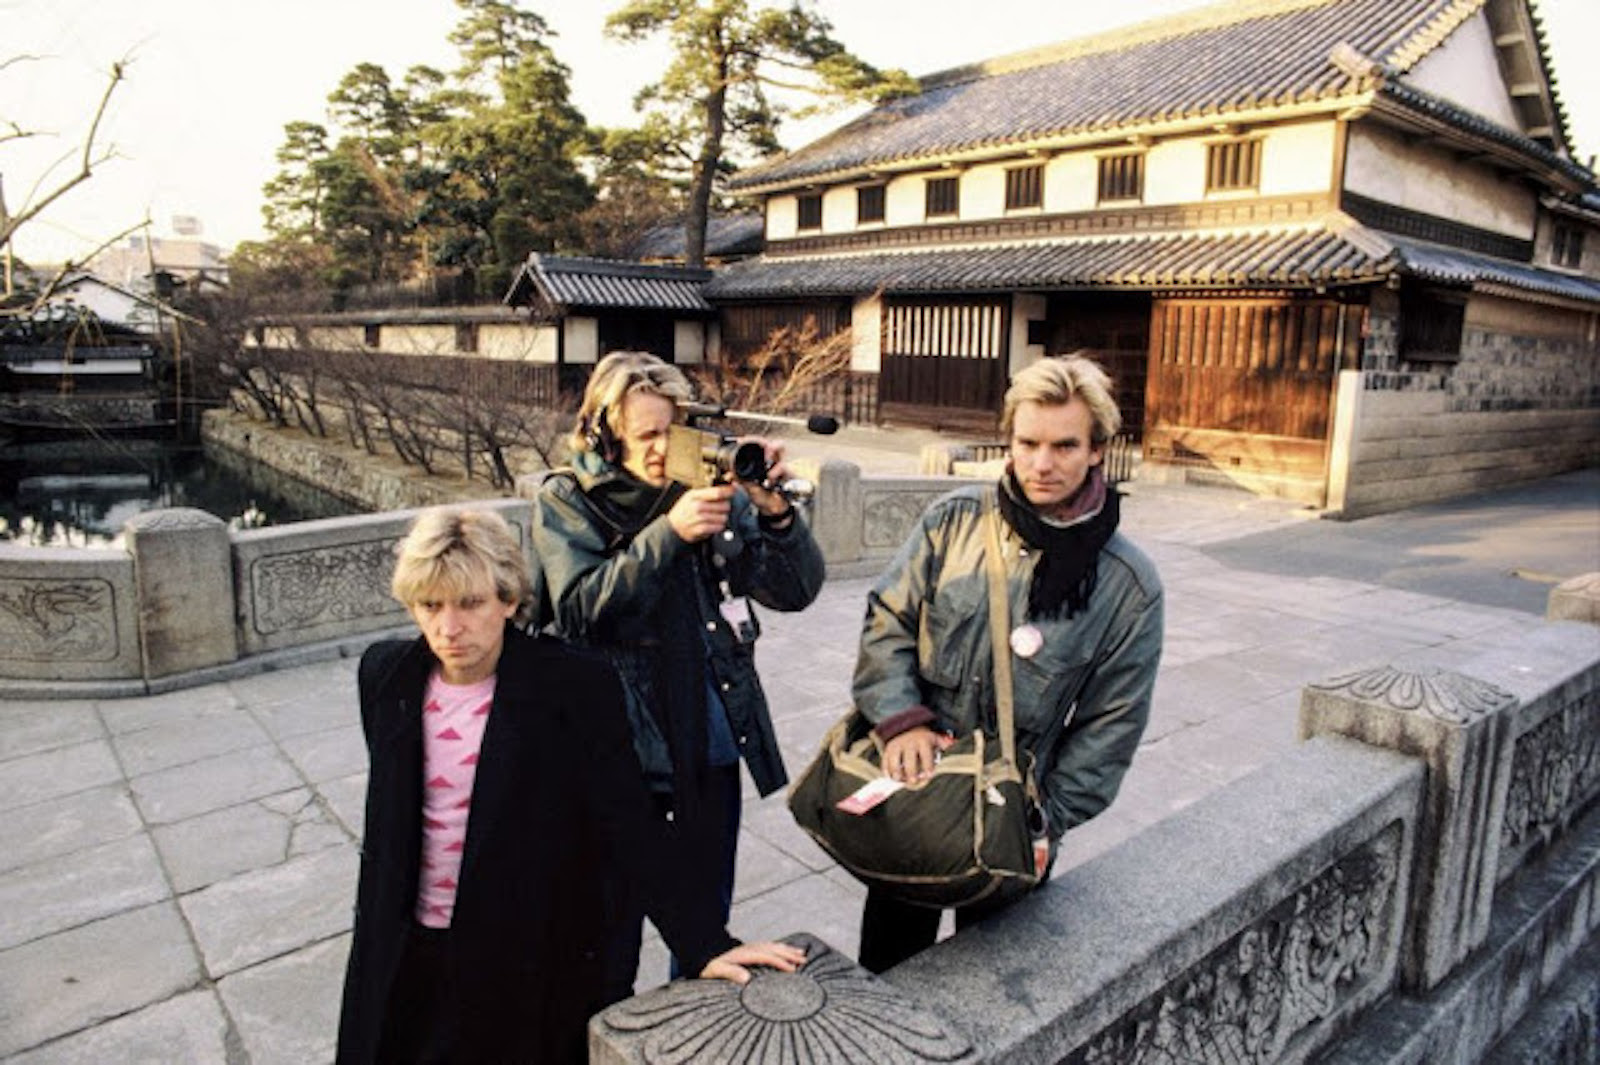 rock-stars-as-tourists-in-japan-1970s-80s-5.jpg